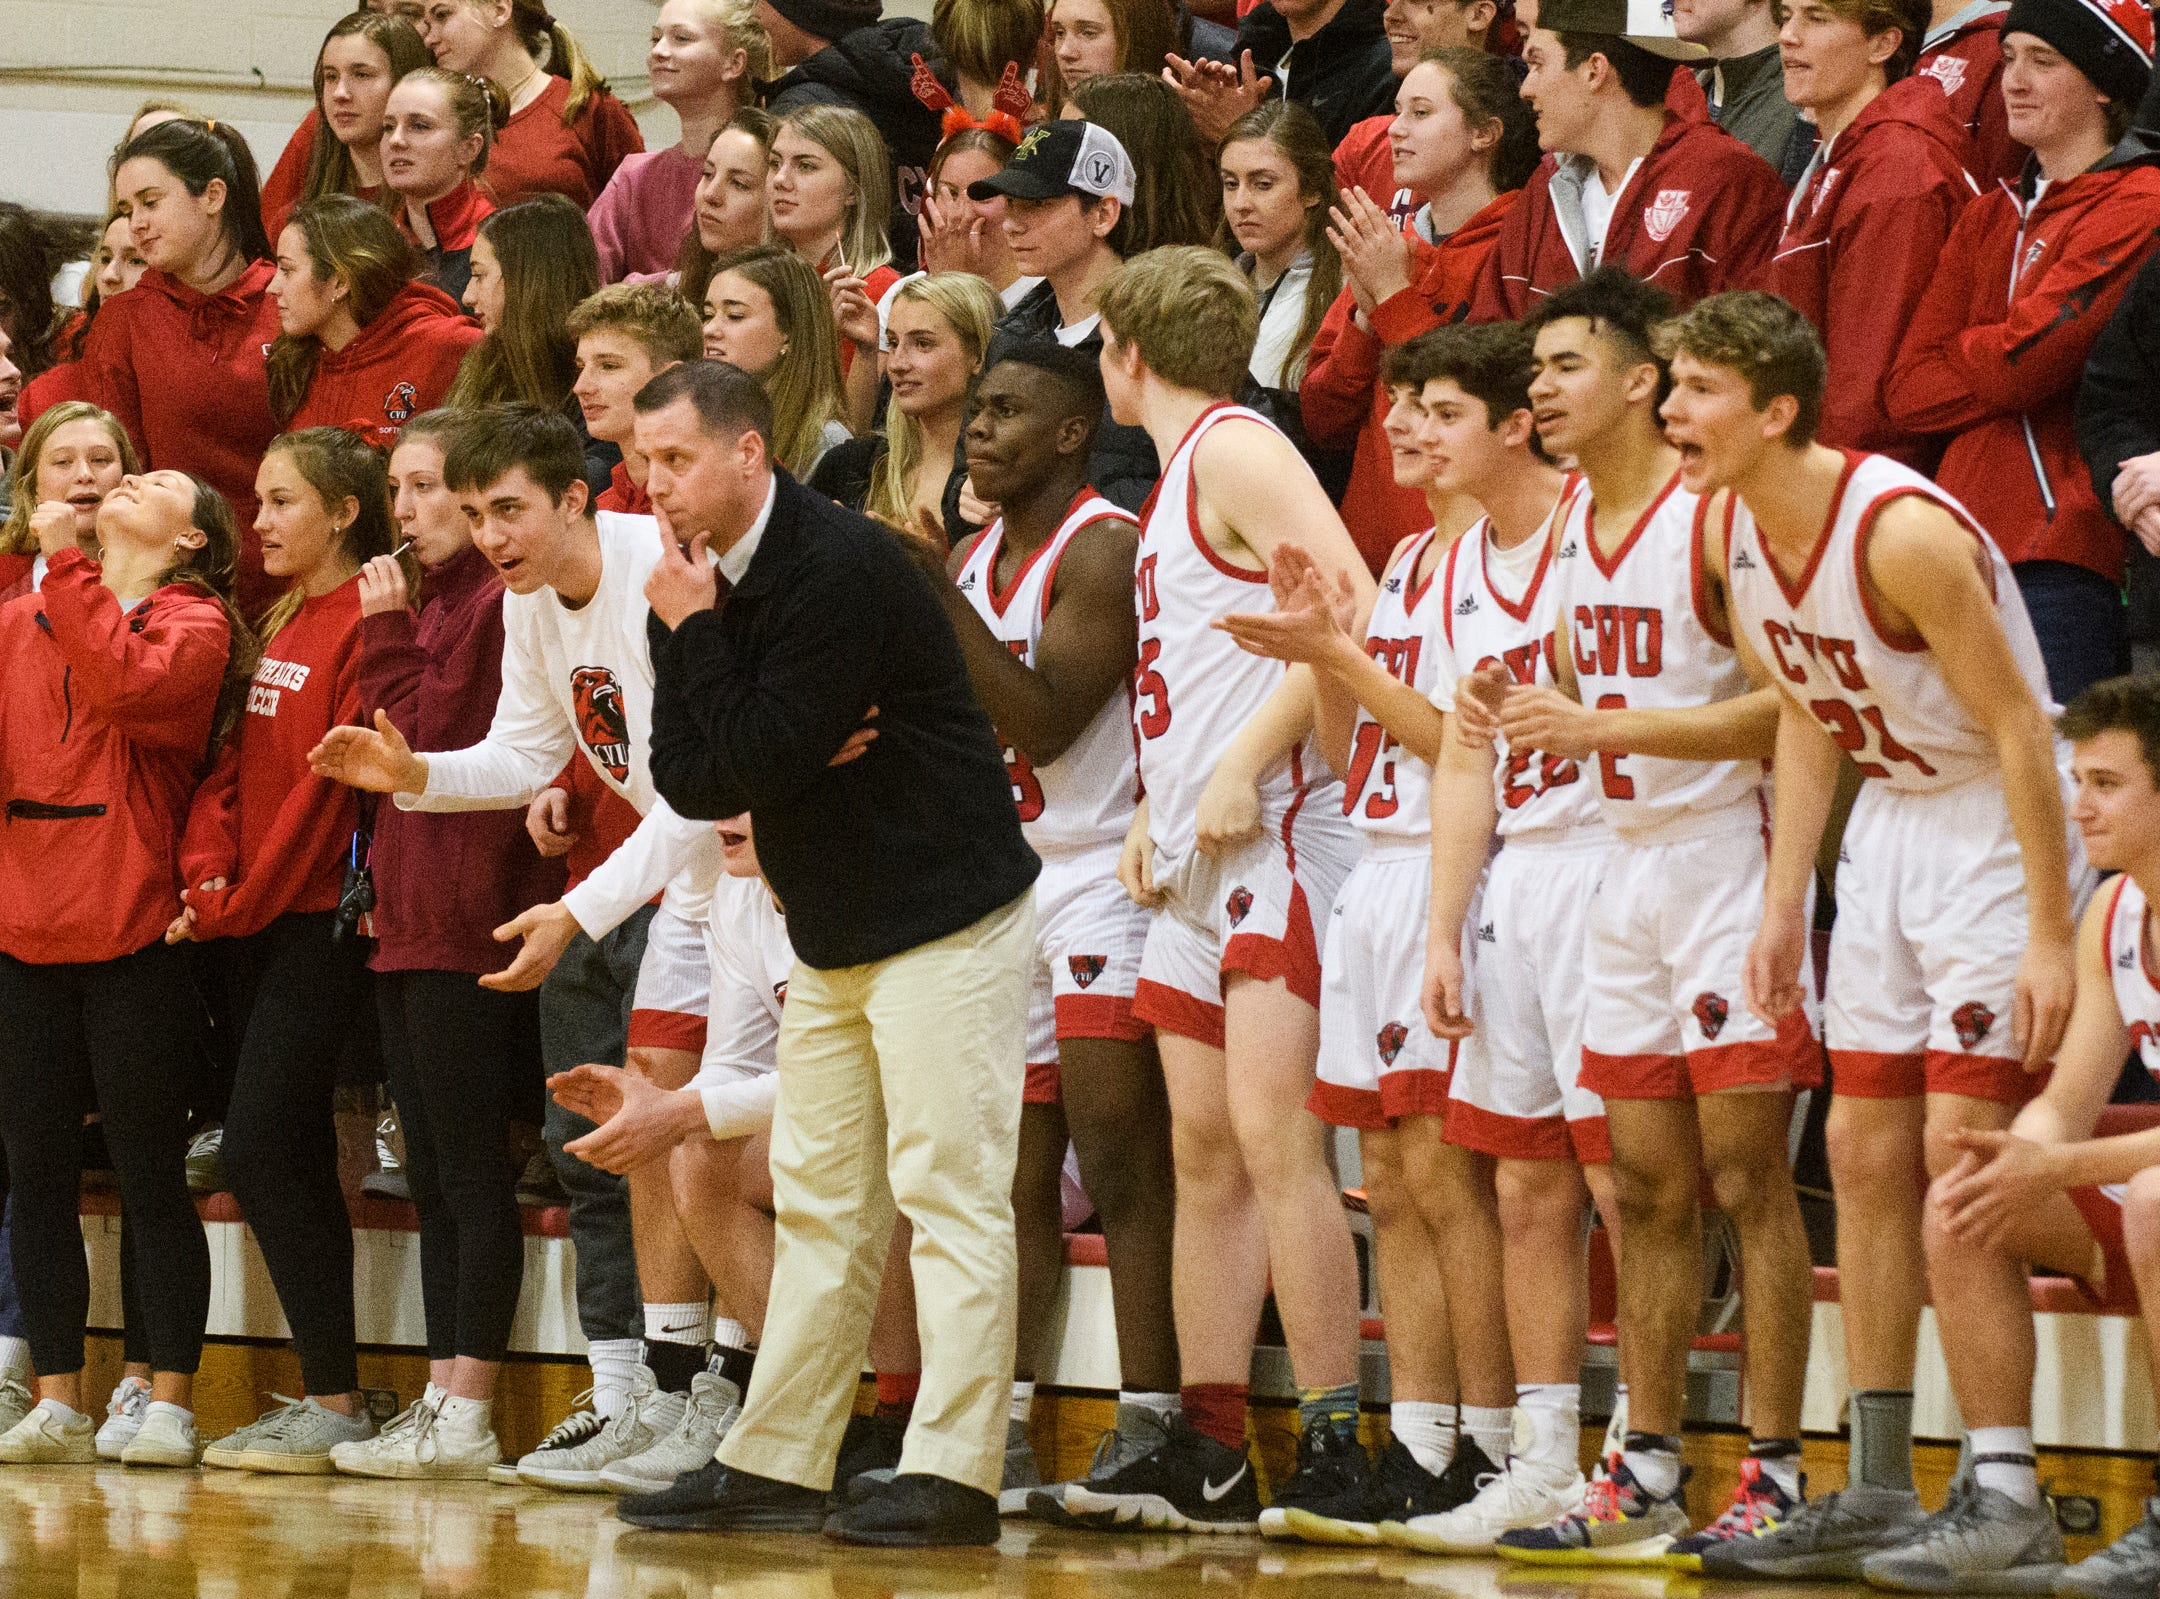 CVU head coach Michael Osborne watches the action on the court during the boys basketball game between he South Burlington Wolves and the Champlain Valley Union Redhawks at CVU High School on Tuesday night March 5, 2019 in Hinesburg, Vermont.